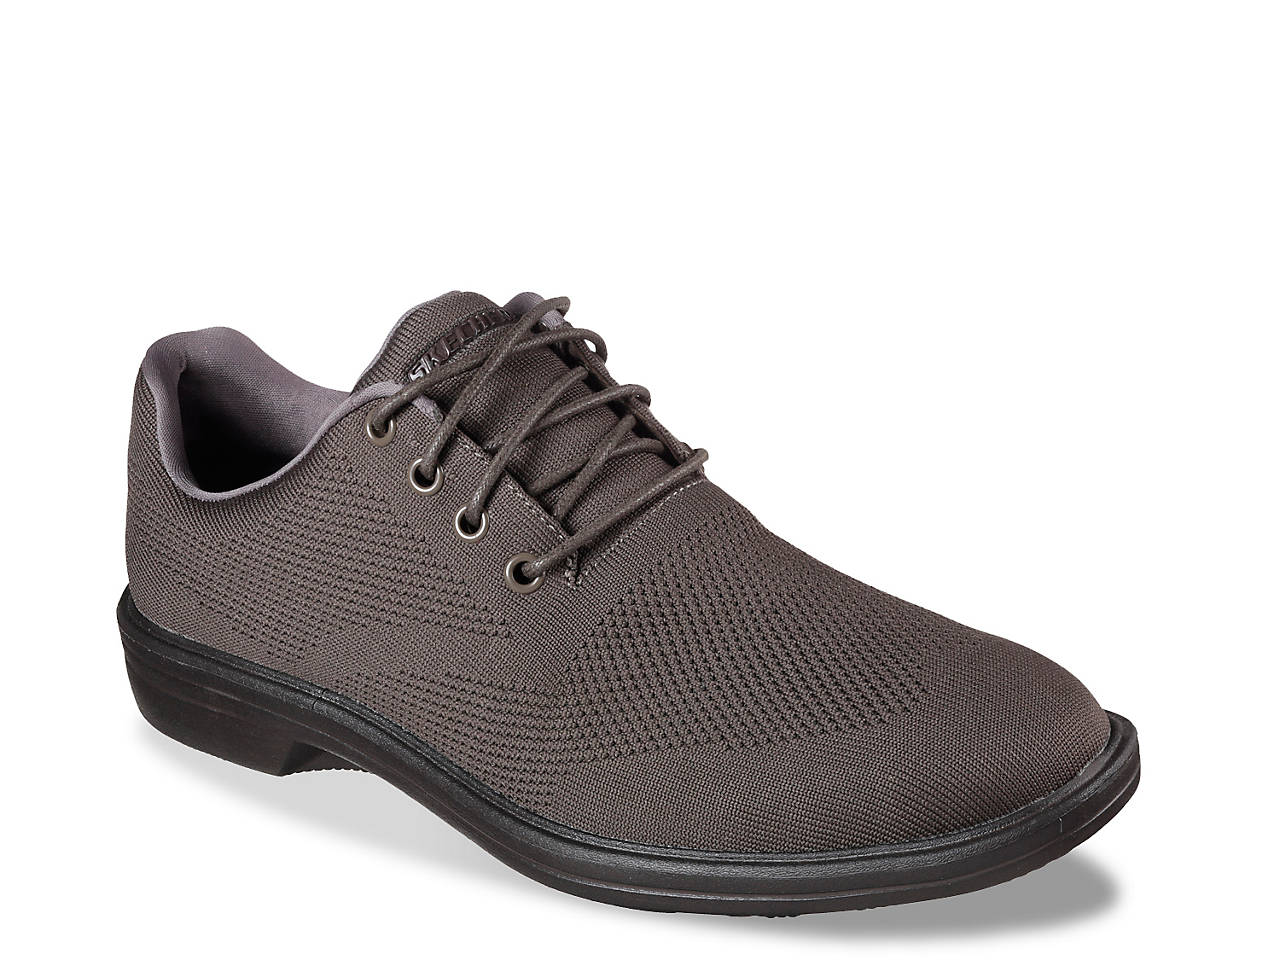 skechers relaxed fit dress shoes